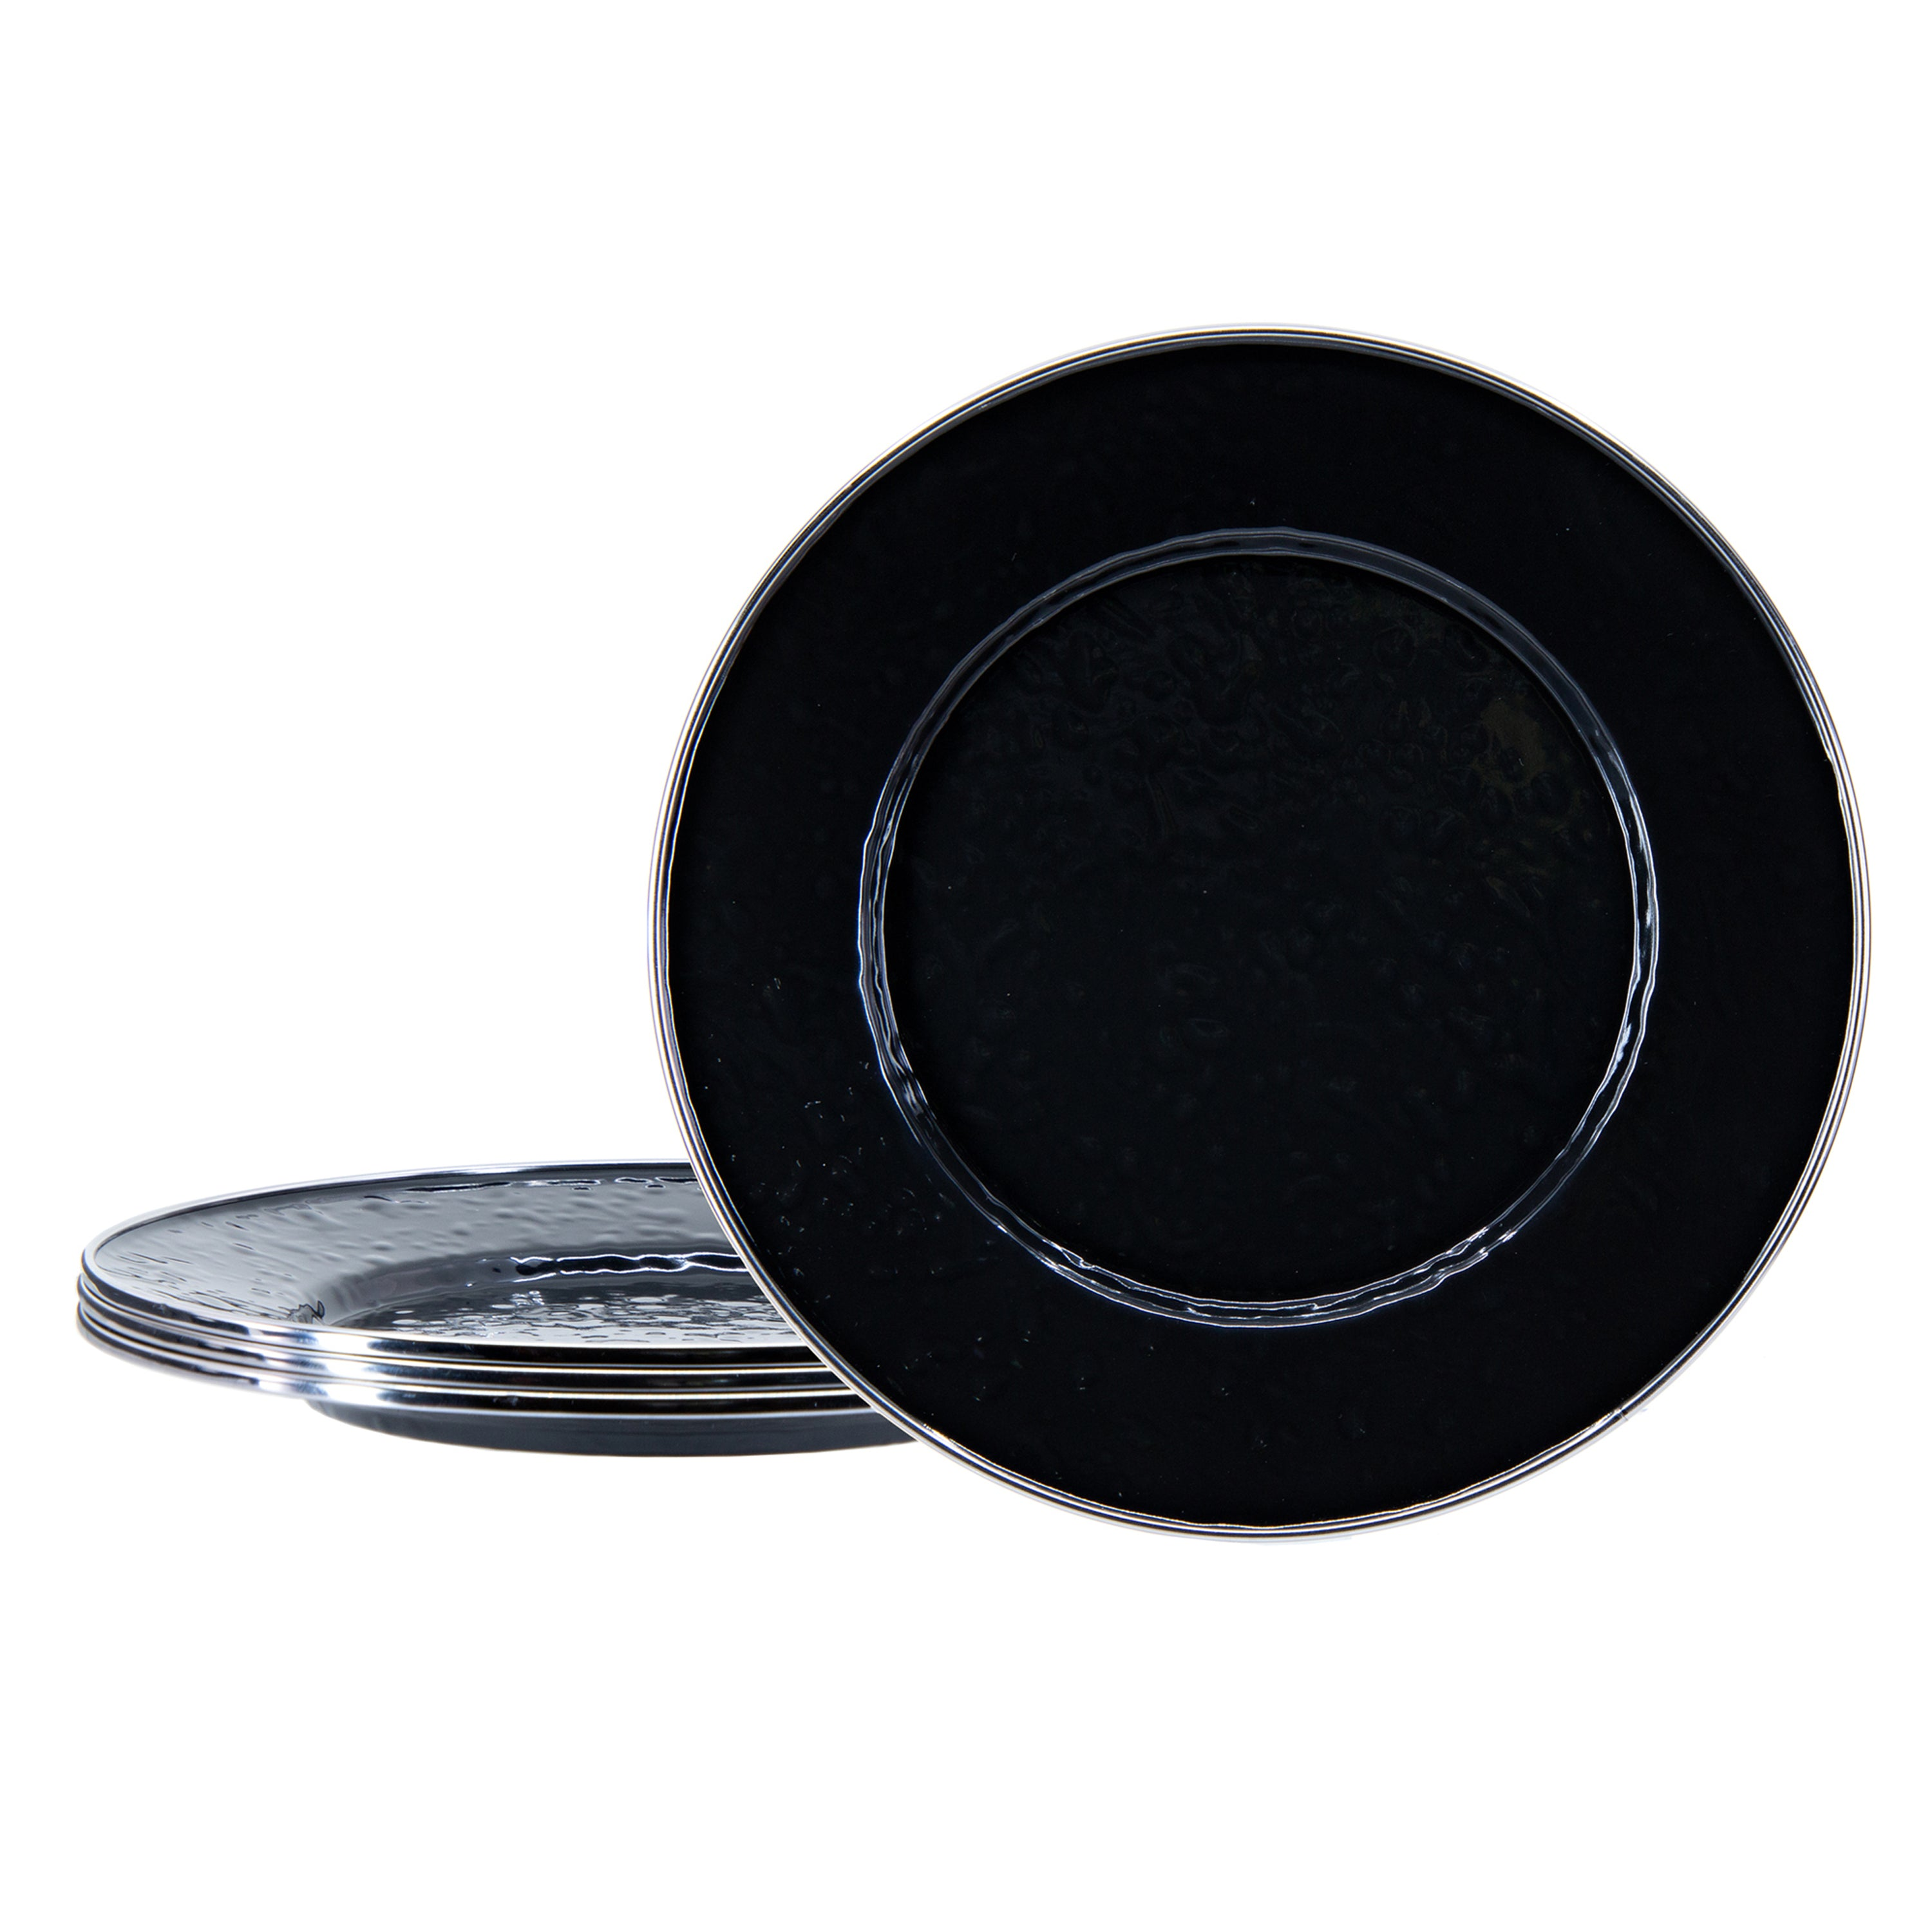 BK11S4 - Set of 4 Solid Black Sandwich Plates Image 1